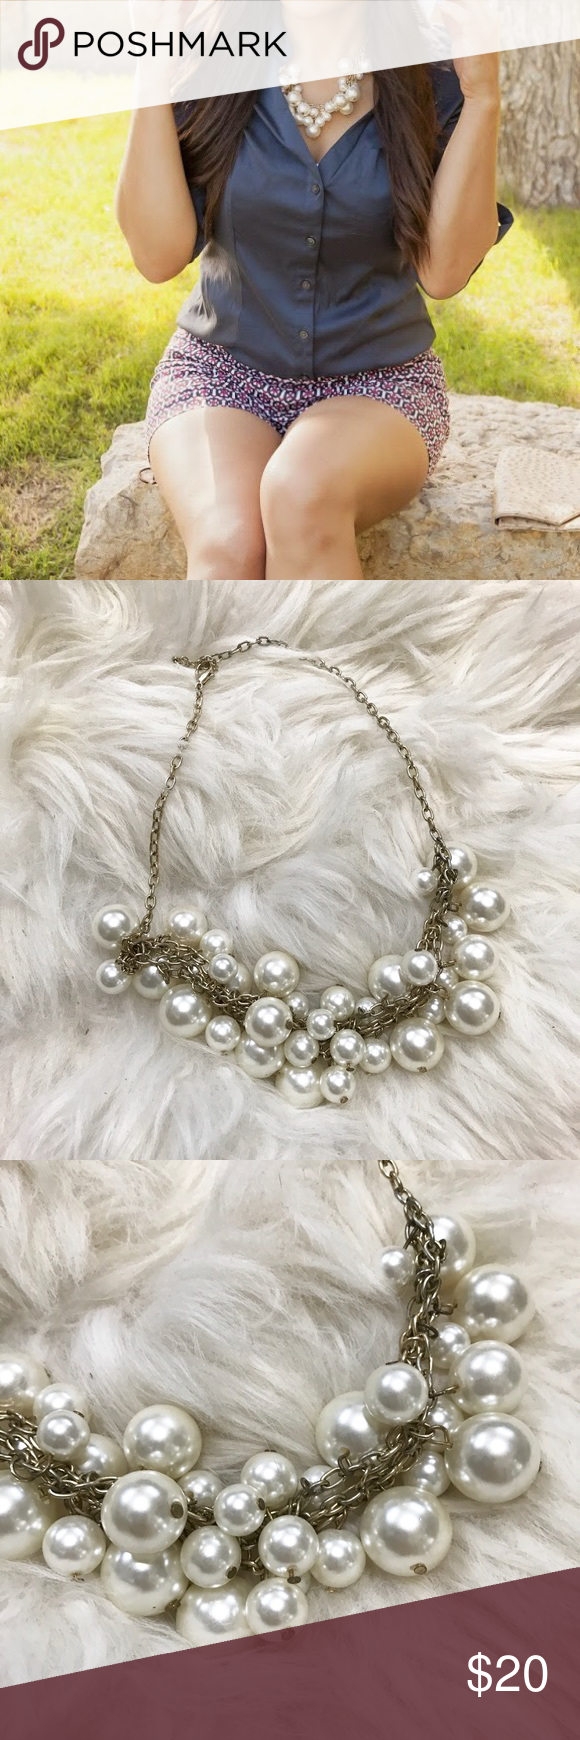 White Pearl Bauble Gold Chain Statement Necklace In great condition, worn a few times. White faux pearl circular baubles layered along a gold chain. Lobster clasp.  ❌NO TRADES OR PAYPAL❌ Jewelry Necklaces